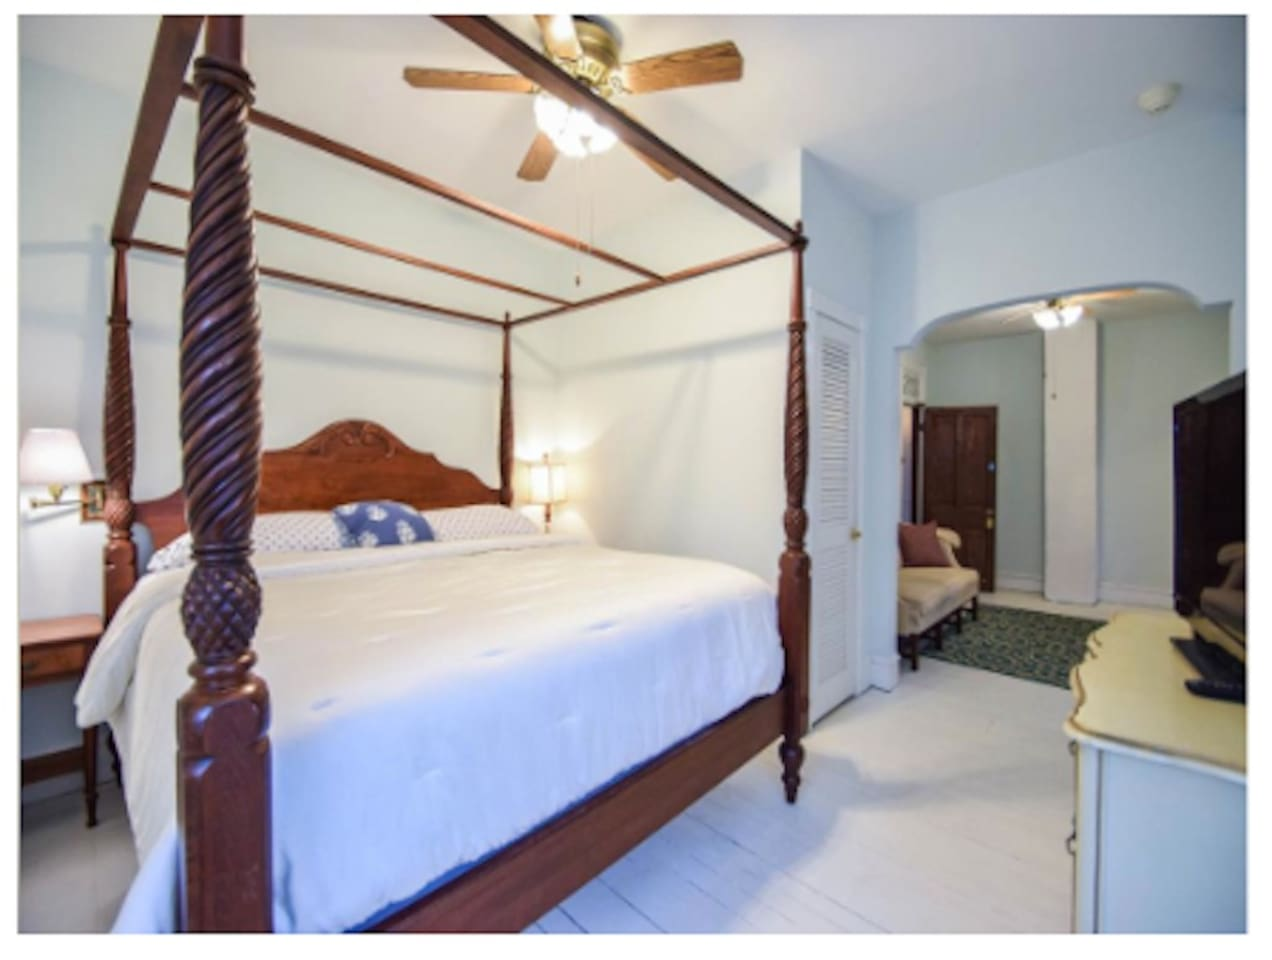 The Homer Room features a king size bed, sitting area and private bathroom